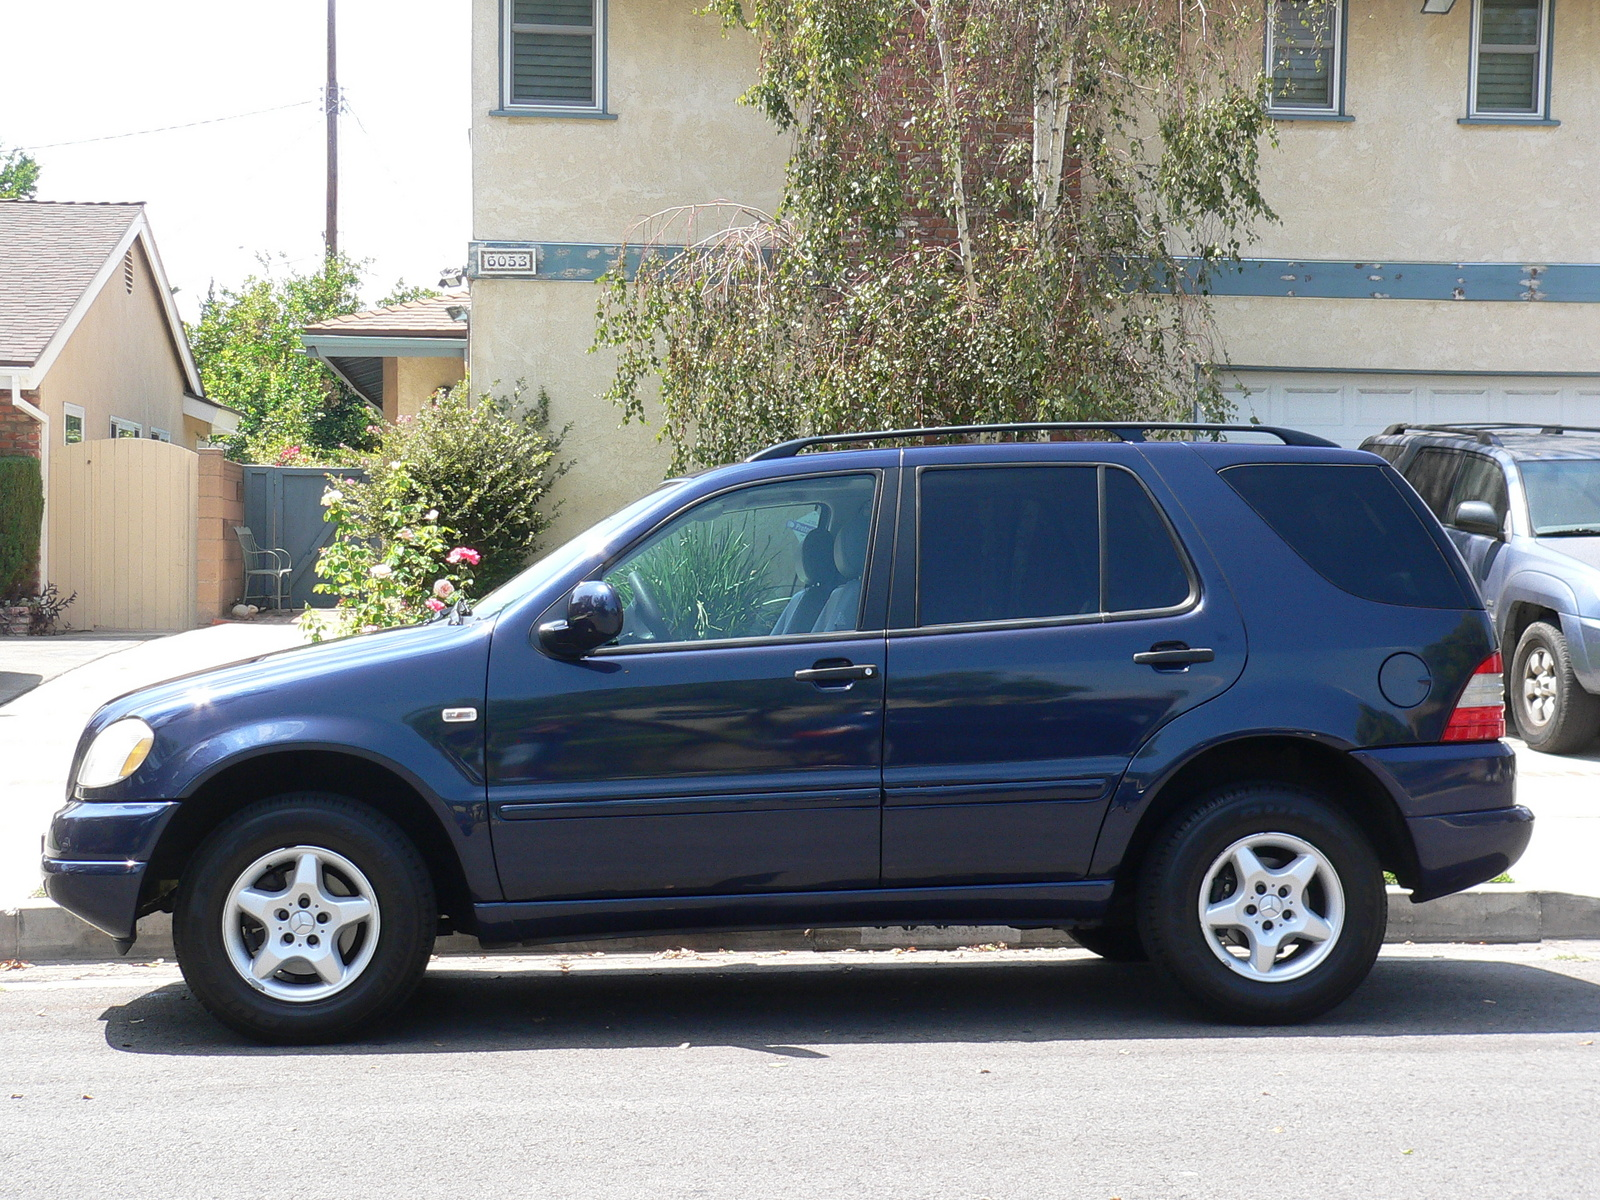 Picture of 2000 mercedes benz m class ml320 exterior for Mercedes benz ml320 suv